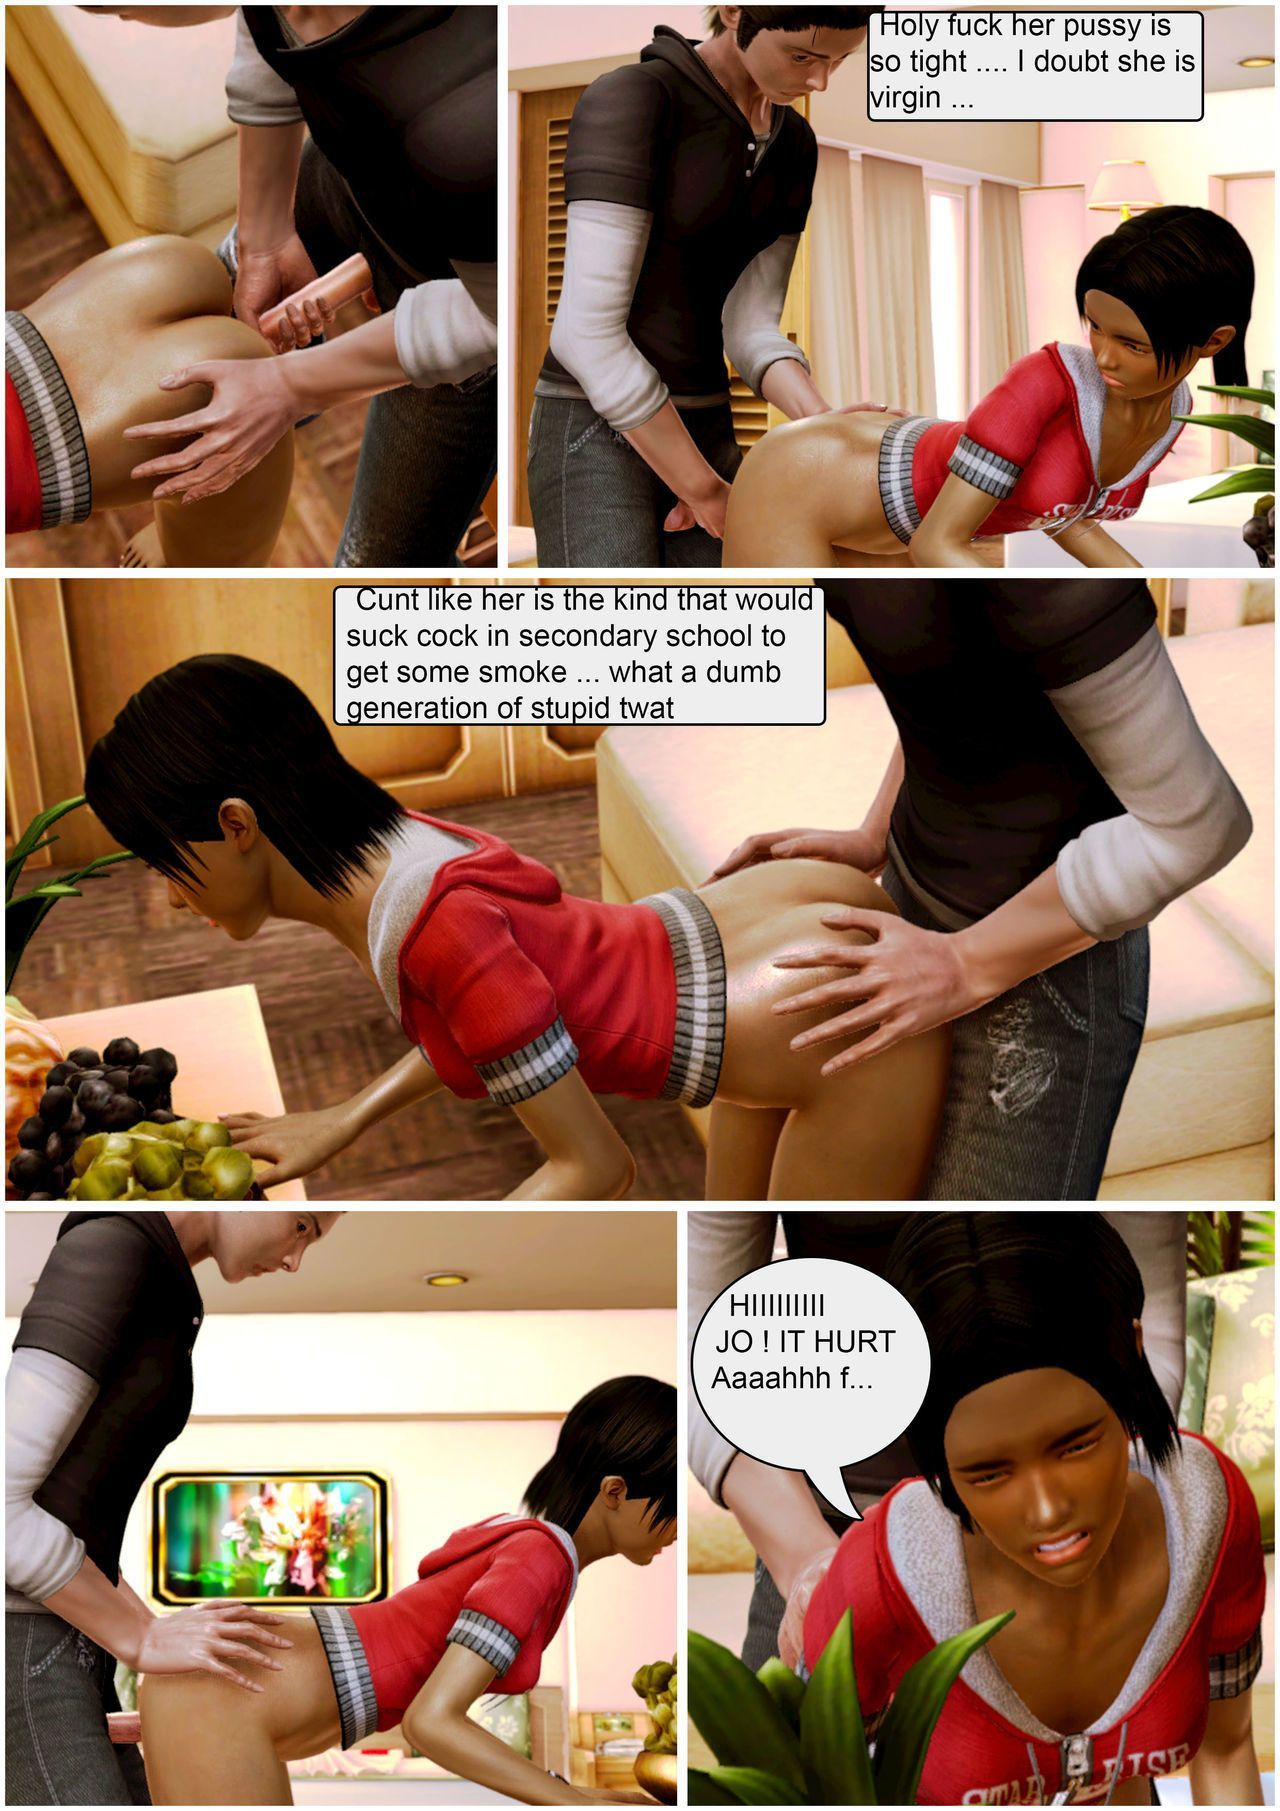 [Wolfyperv] Adopted Child Love for his Family 2 - part 2